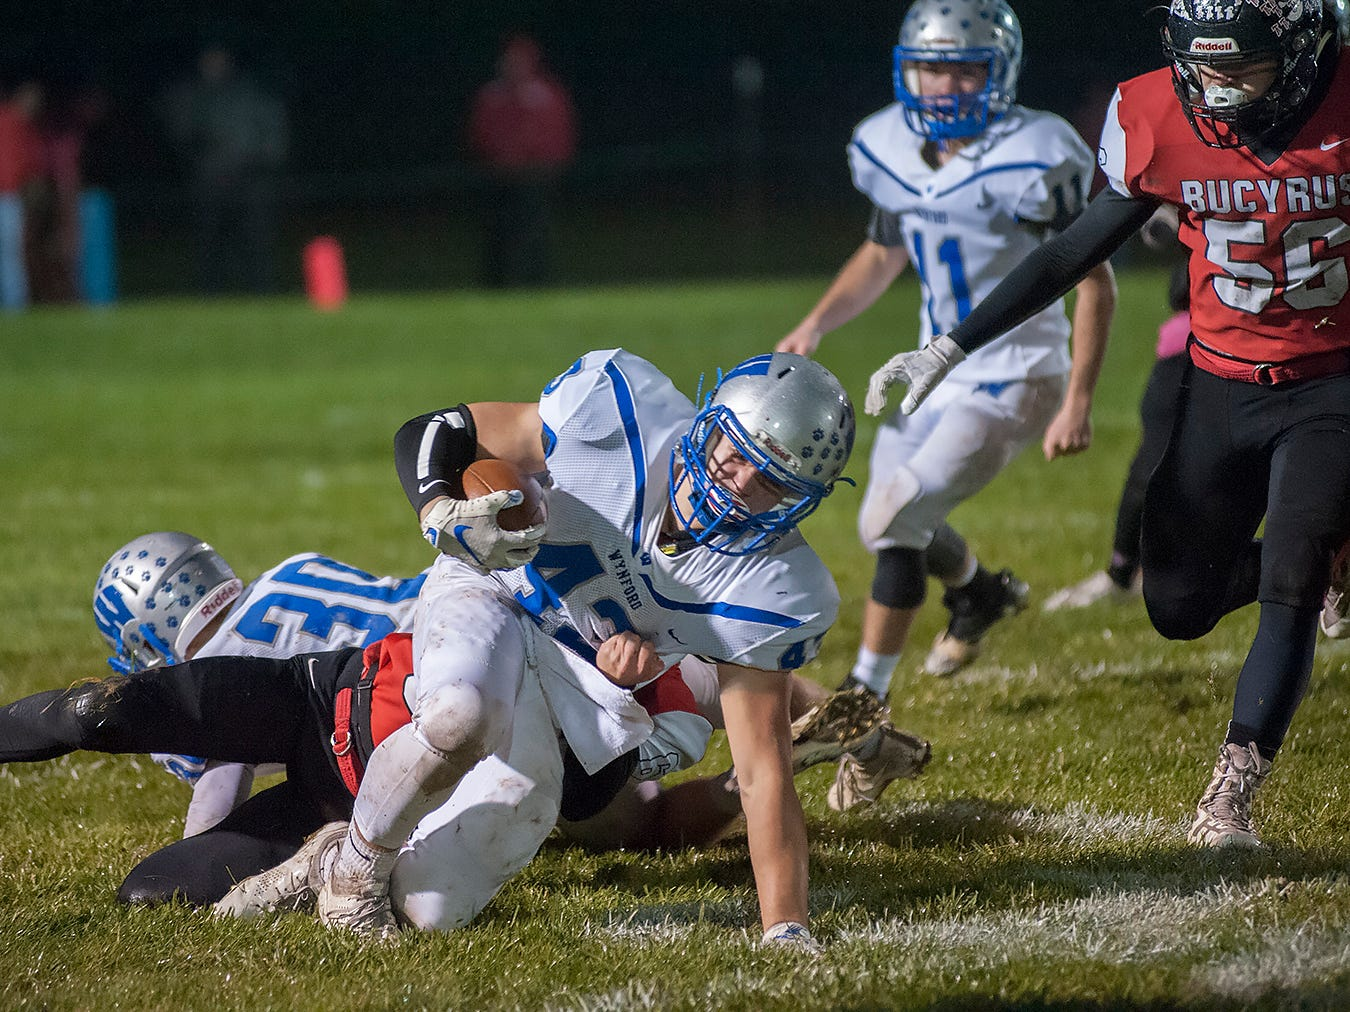 Wynford's Kendall Blair is brought down by a Bucyrus defender.